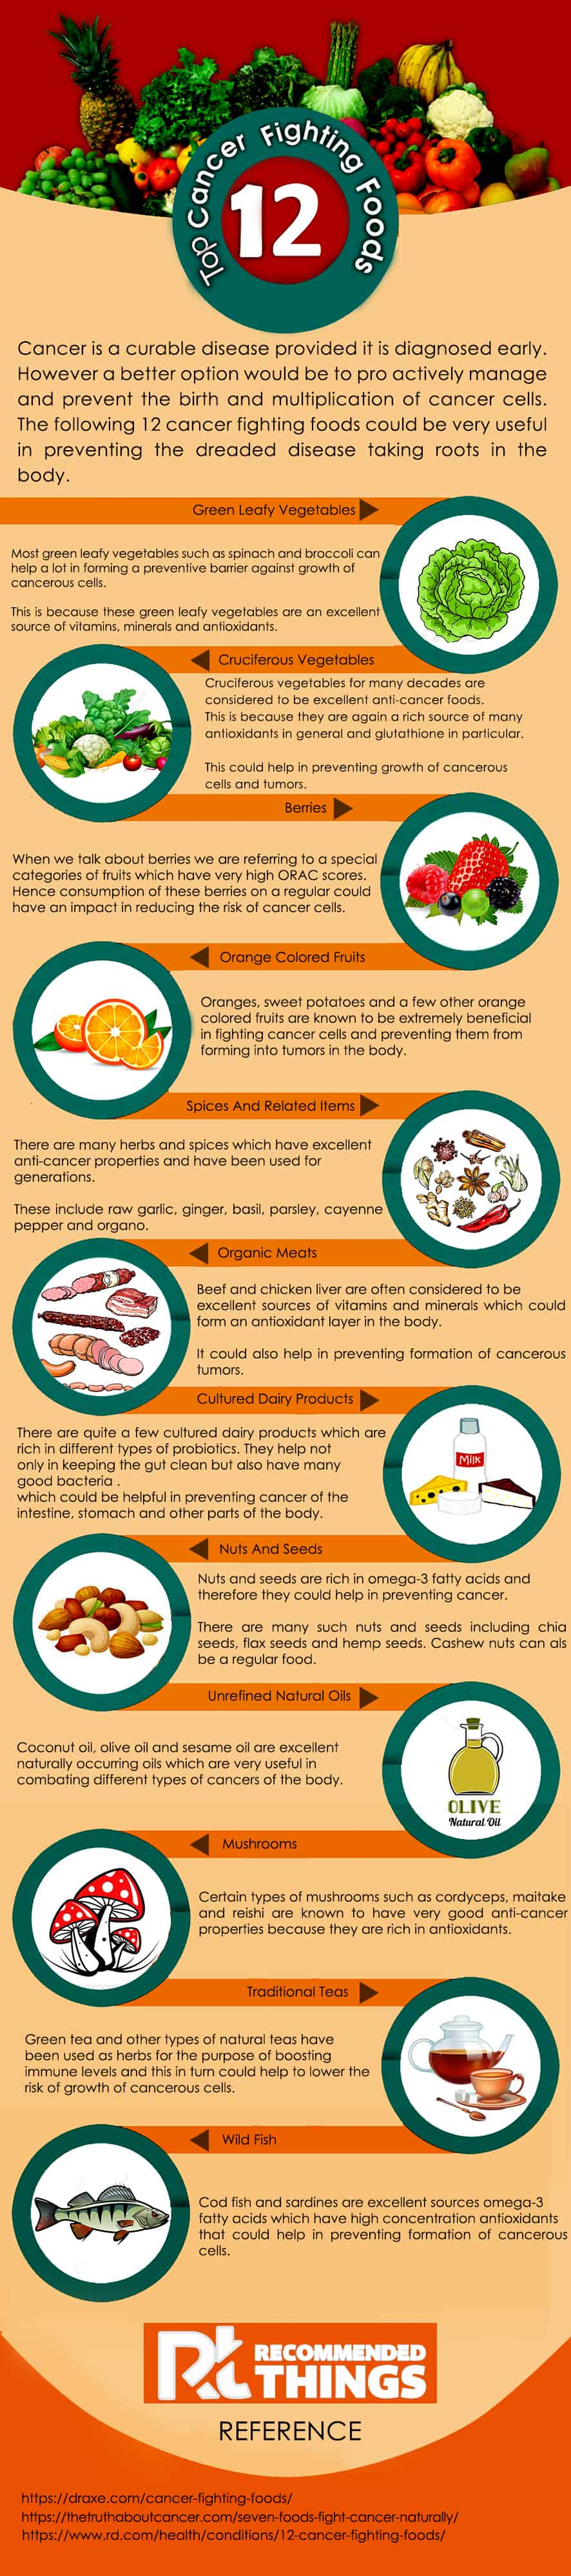 Top 12 Cancer Fighting Foods [ Infographic]